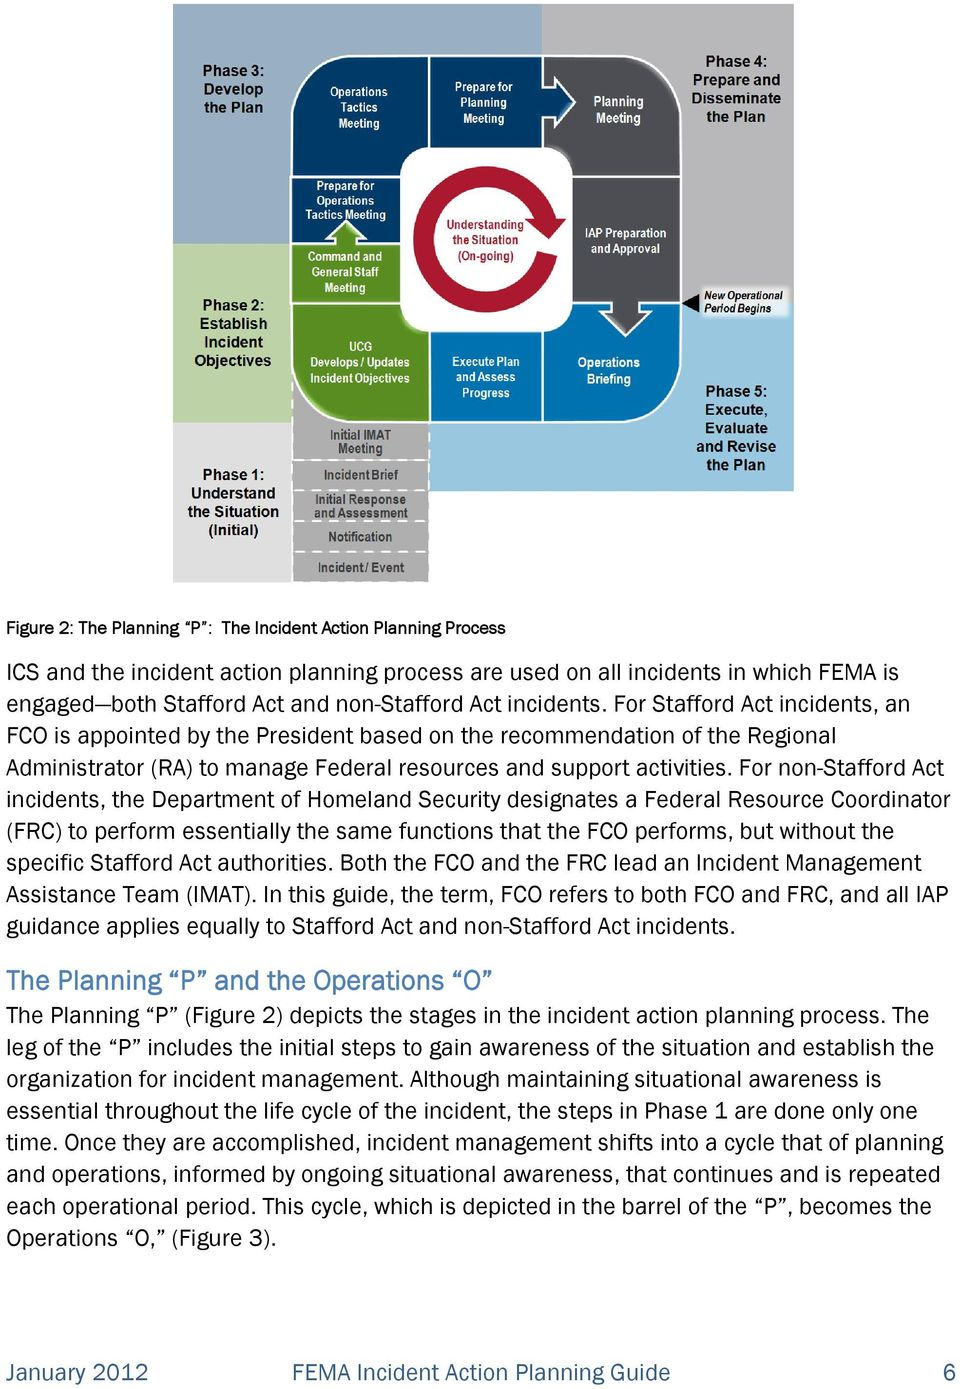 For non-stafford Act incidents, the Department of Homeland Security designates a Federal Resource Coordinator (FRC) to perform essentially the same functions that the FCO performs, but without the